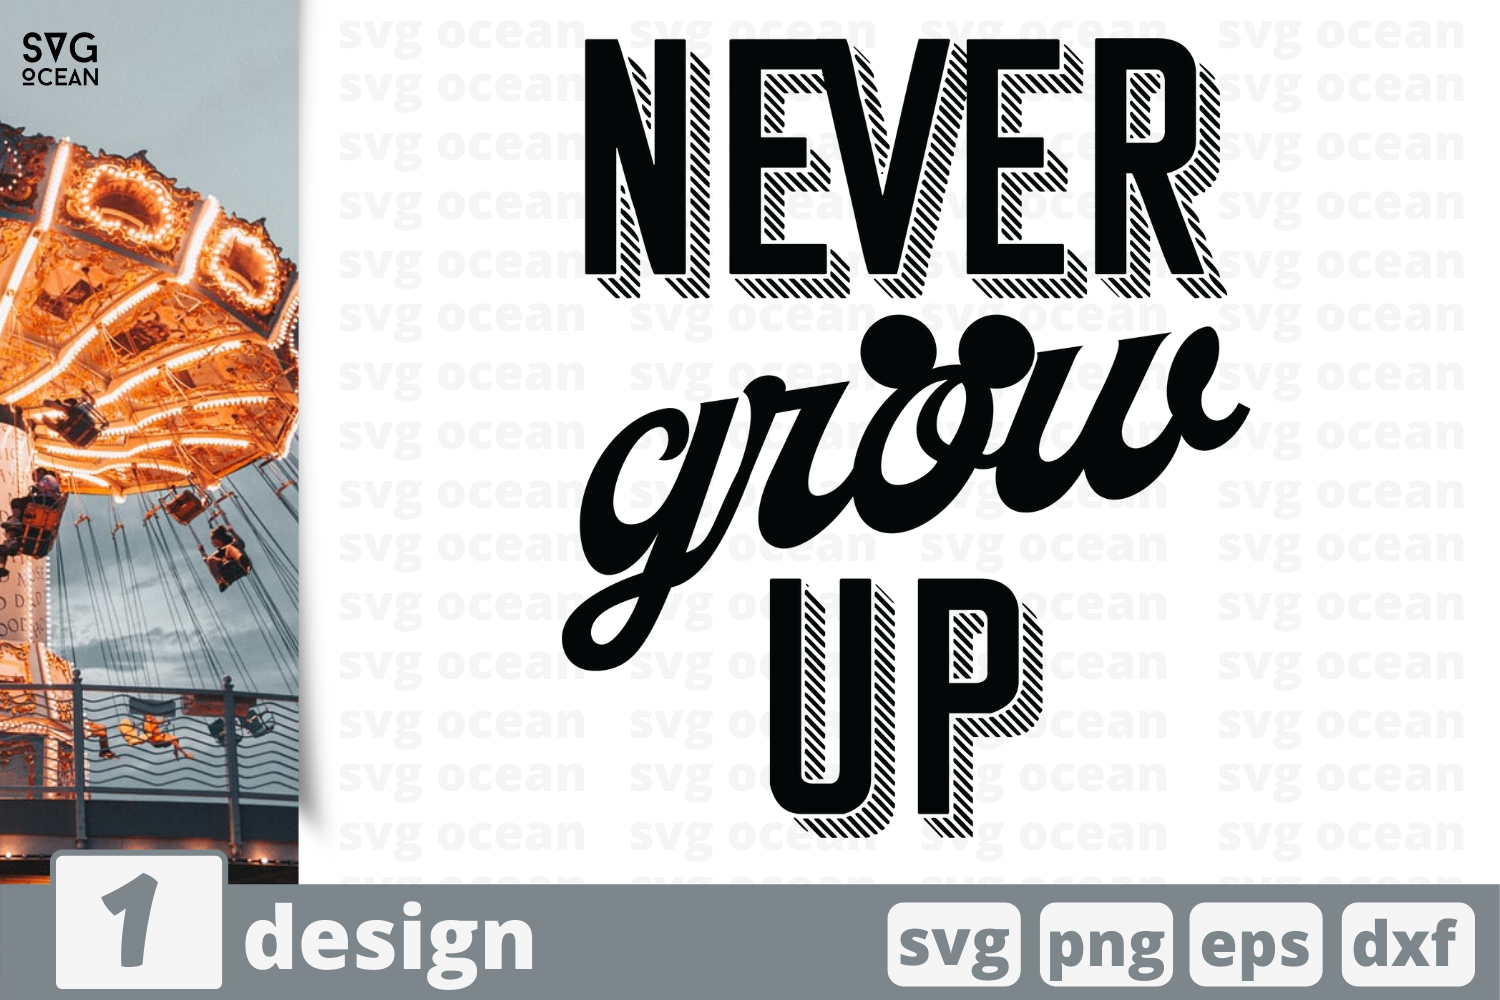 Download Free Never Grow Up Graphic By Svgocean Creative Fabrica for Cricut Explore, Silhouette and other cutting machines.